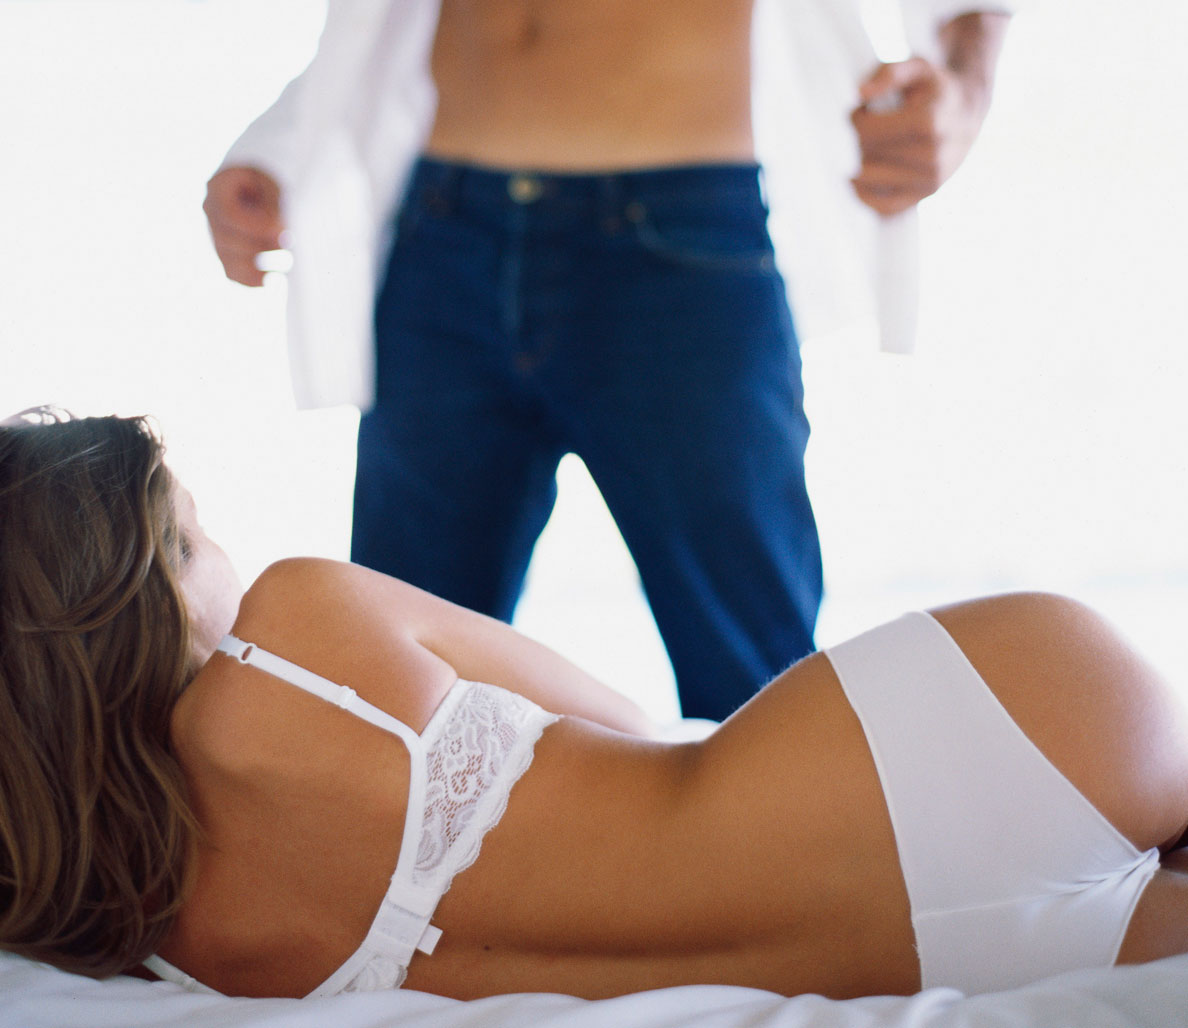 10 Things She's Secretly Thinking About Your Penis